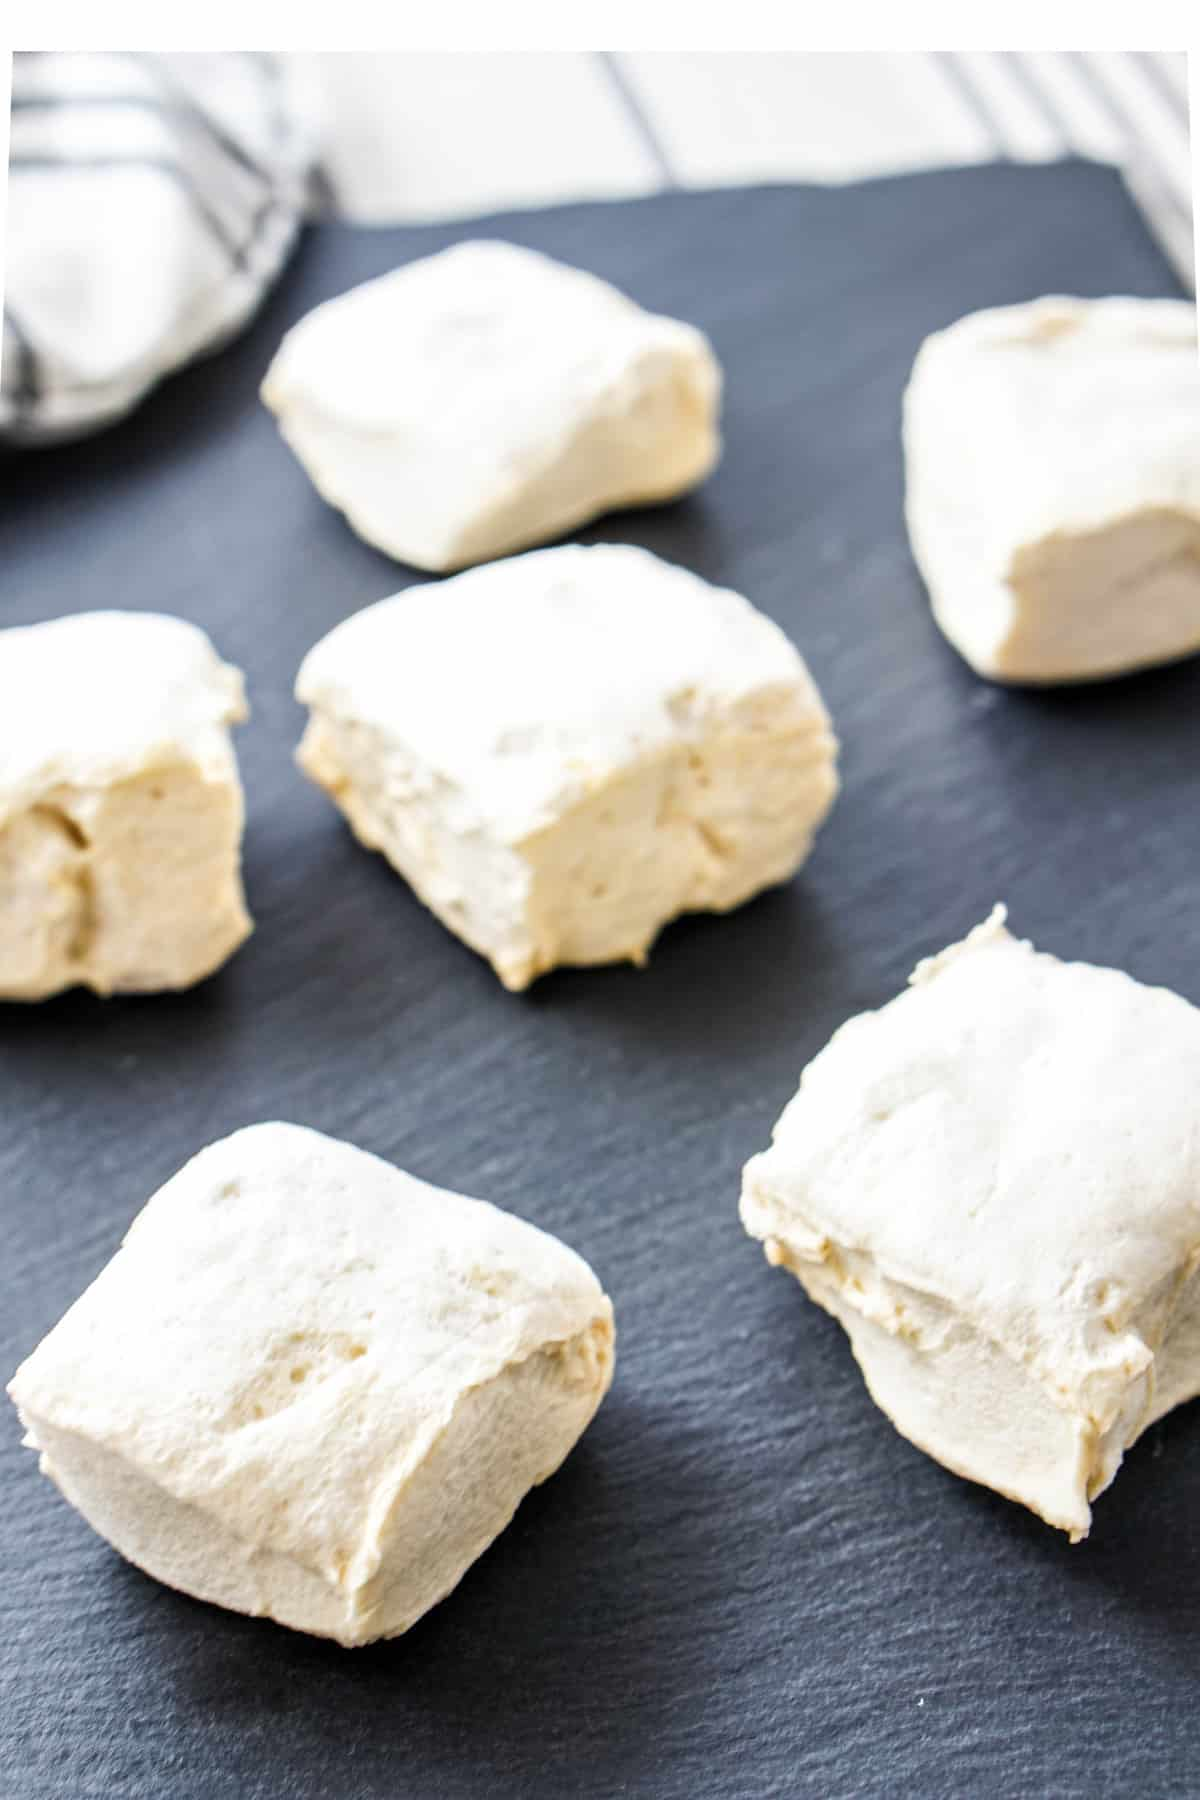 Marshmallows are the best! Now you can enjoy a clean and healthy version with this 4 ingredient homemade marshmallows recipe: water, salt, honey and gelatin